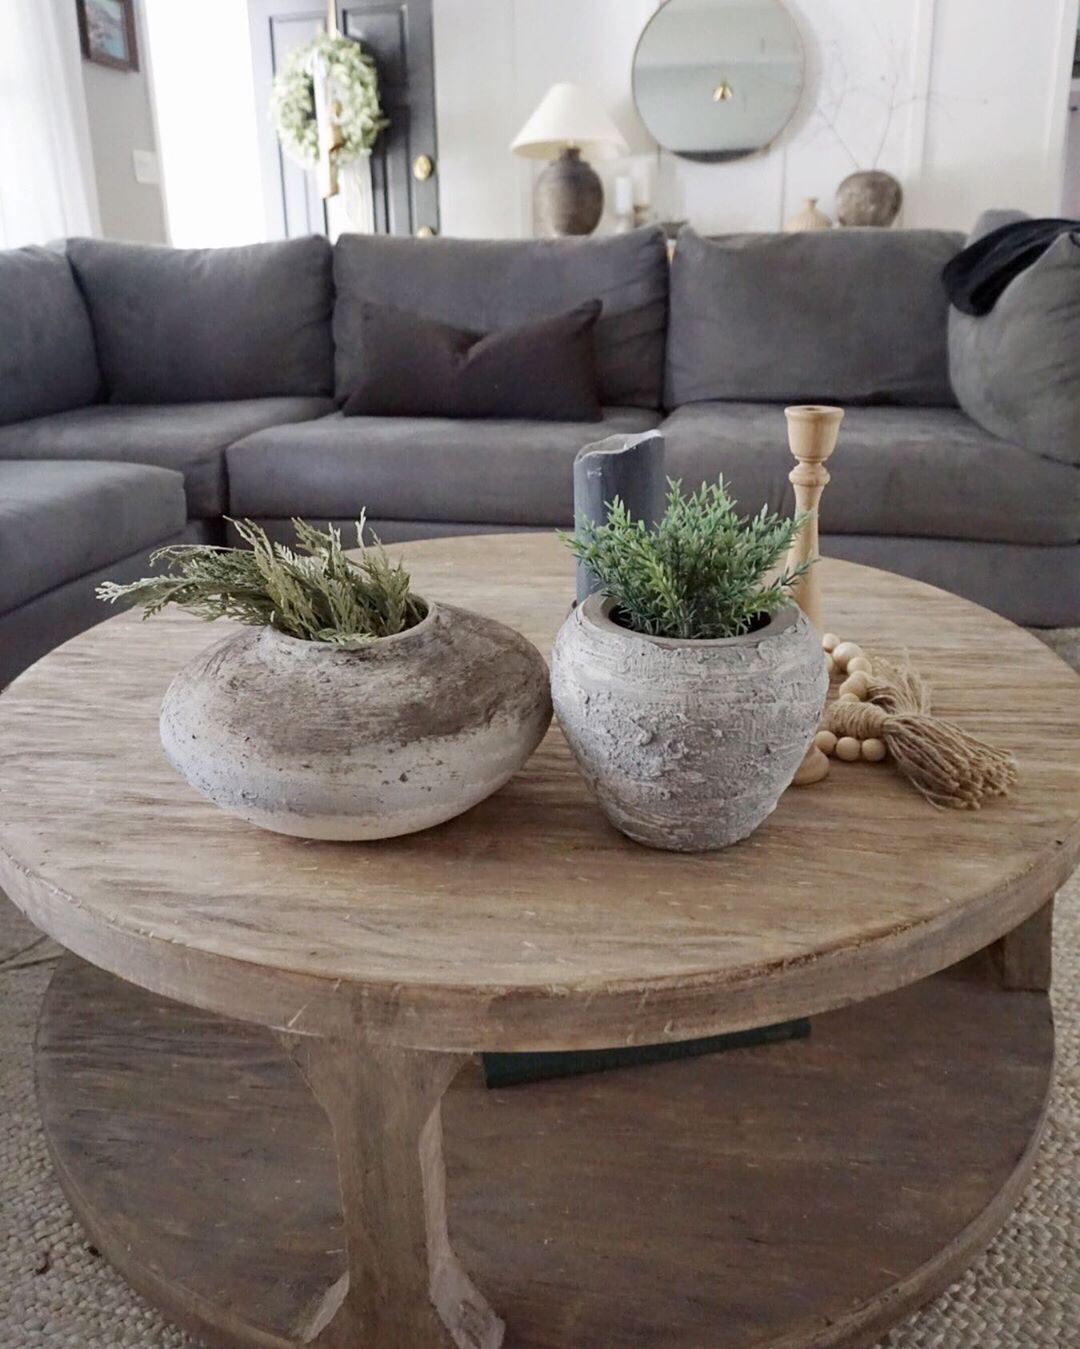 Round Wooden Coffee Table With Diy Rustic Pottery And Grey Couch Grey Sectional Sectional Coffee Table Round Wooden Coffee Table Coffee Table Grey [ 1349 x 1080 Pixel ]